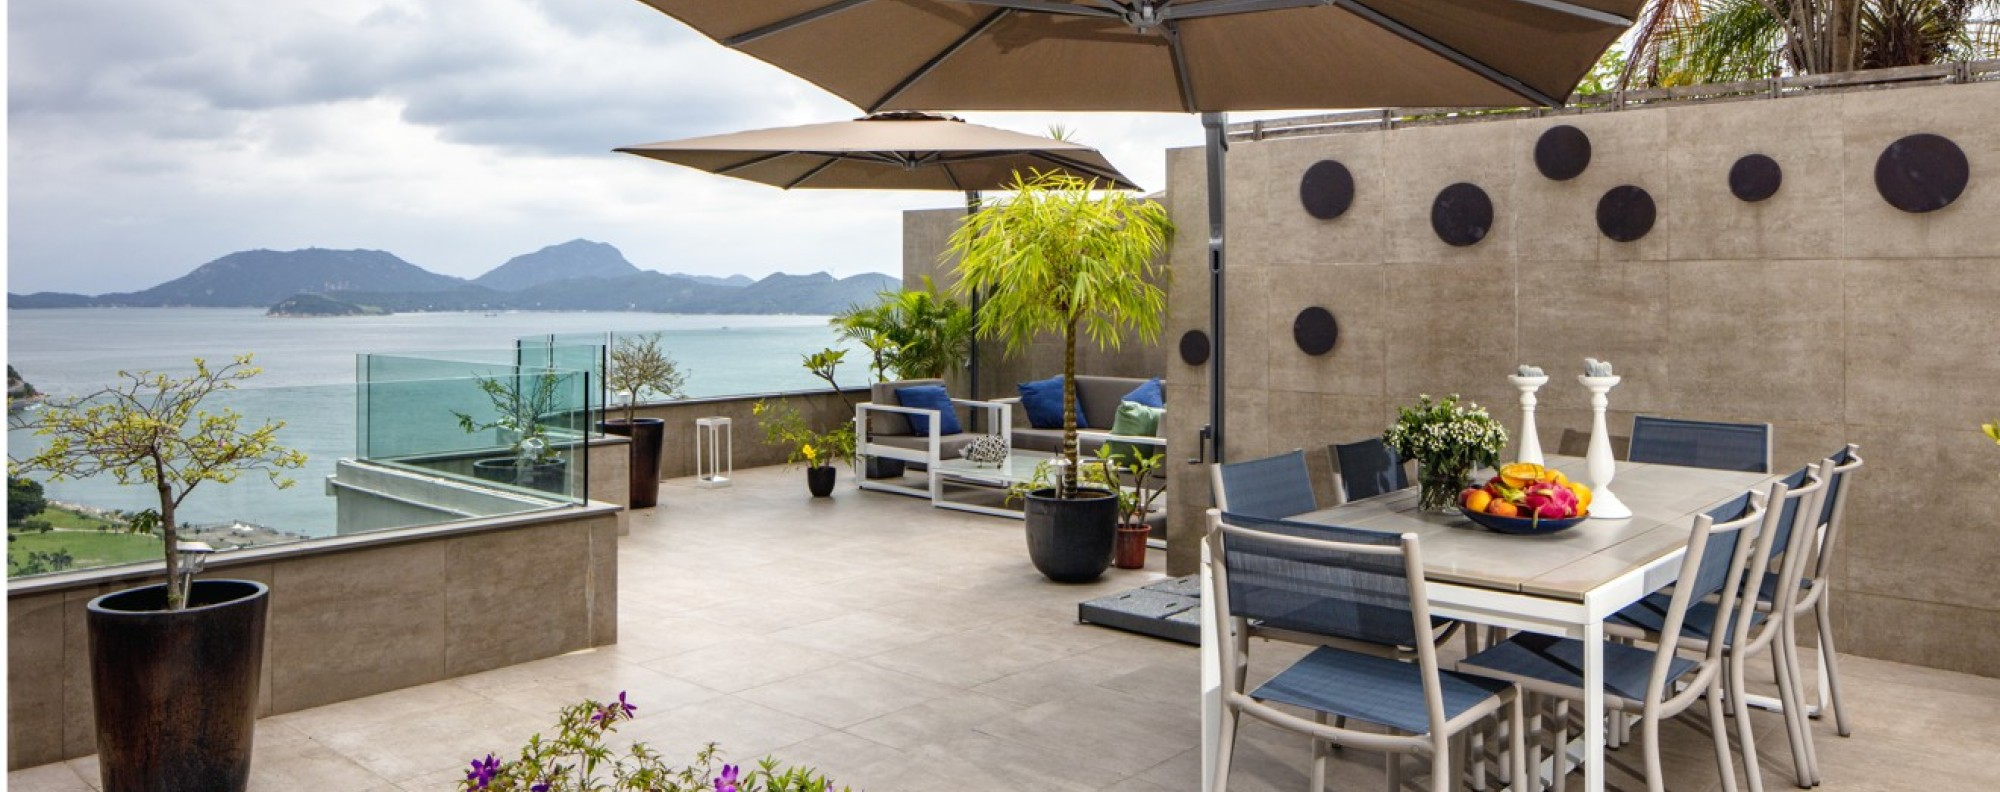 The generous terrace extends the living and dining space outdoors. Picture: John Butlin